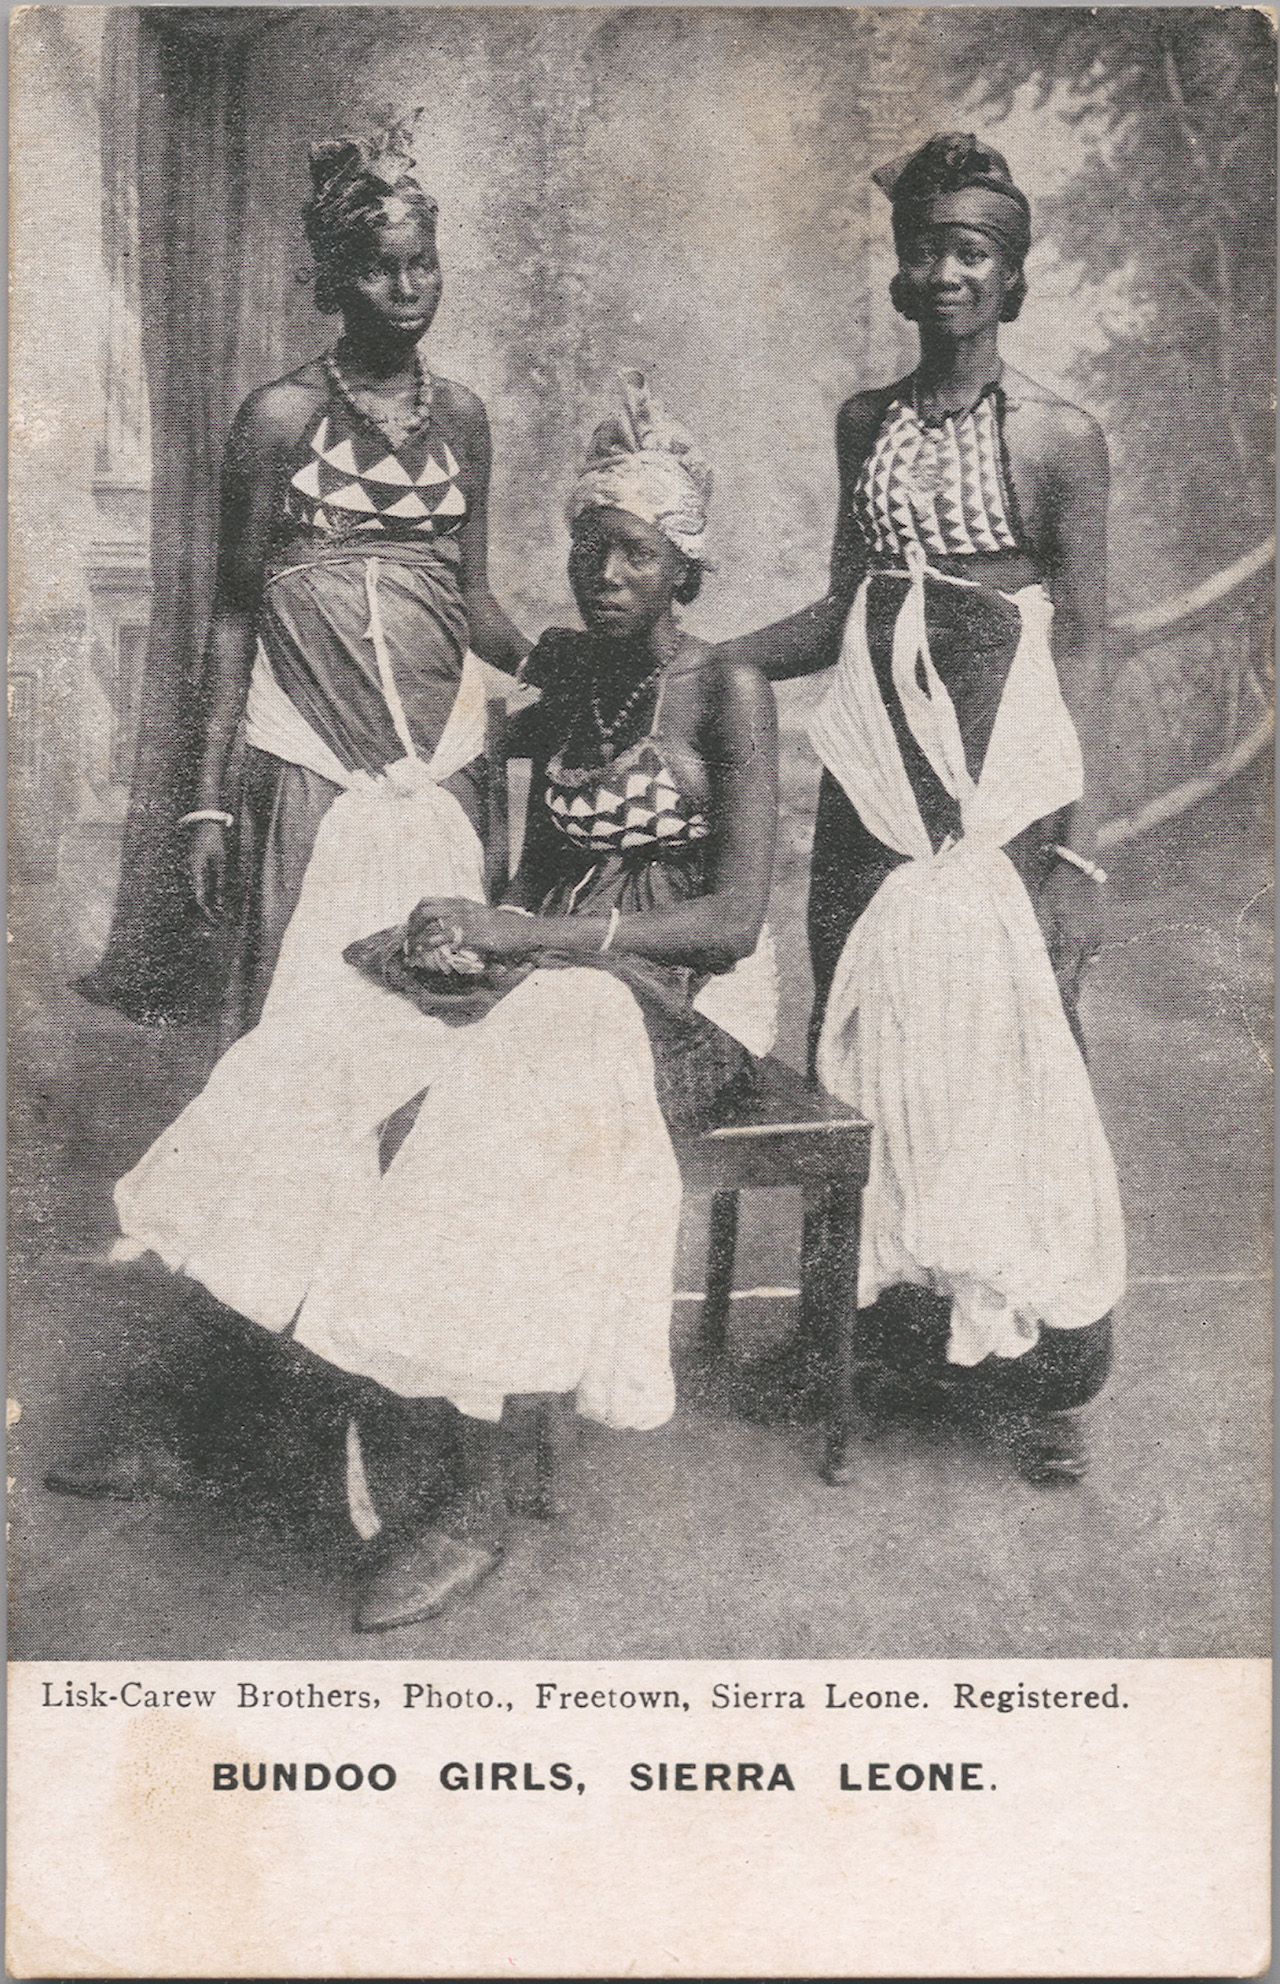 Unknown Artist [possibly Alphonso Lisk-Carew, Sierra Leonean, 1887-1969] Bundoo Girls – Sierra Leone, ca. 1905-1925 Photomechanical reproduction published by Lisk-Carew Brothers 5 x 3 in (13.3 x 8.3 cm) Visual Resource Archives, Department of the Arts of Africa, Oceania, and the Americas